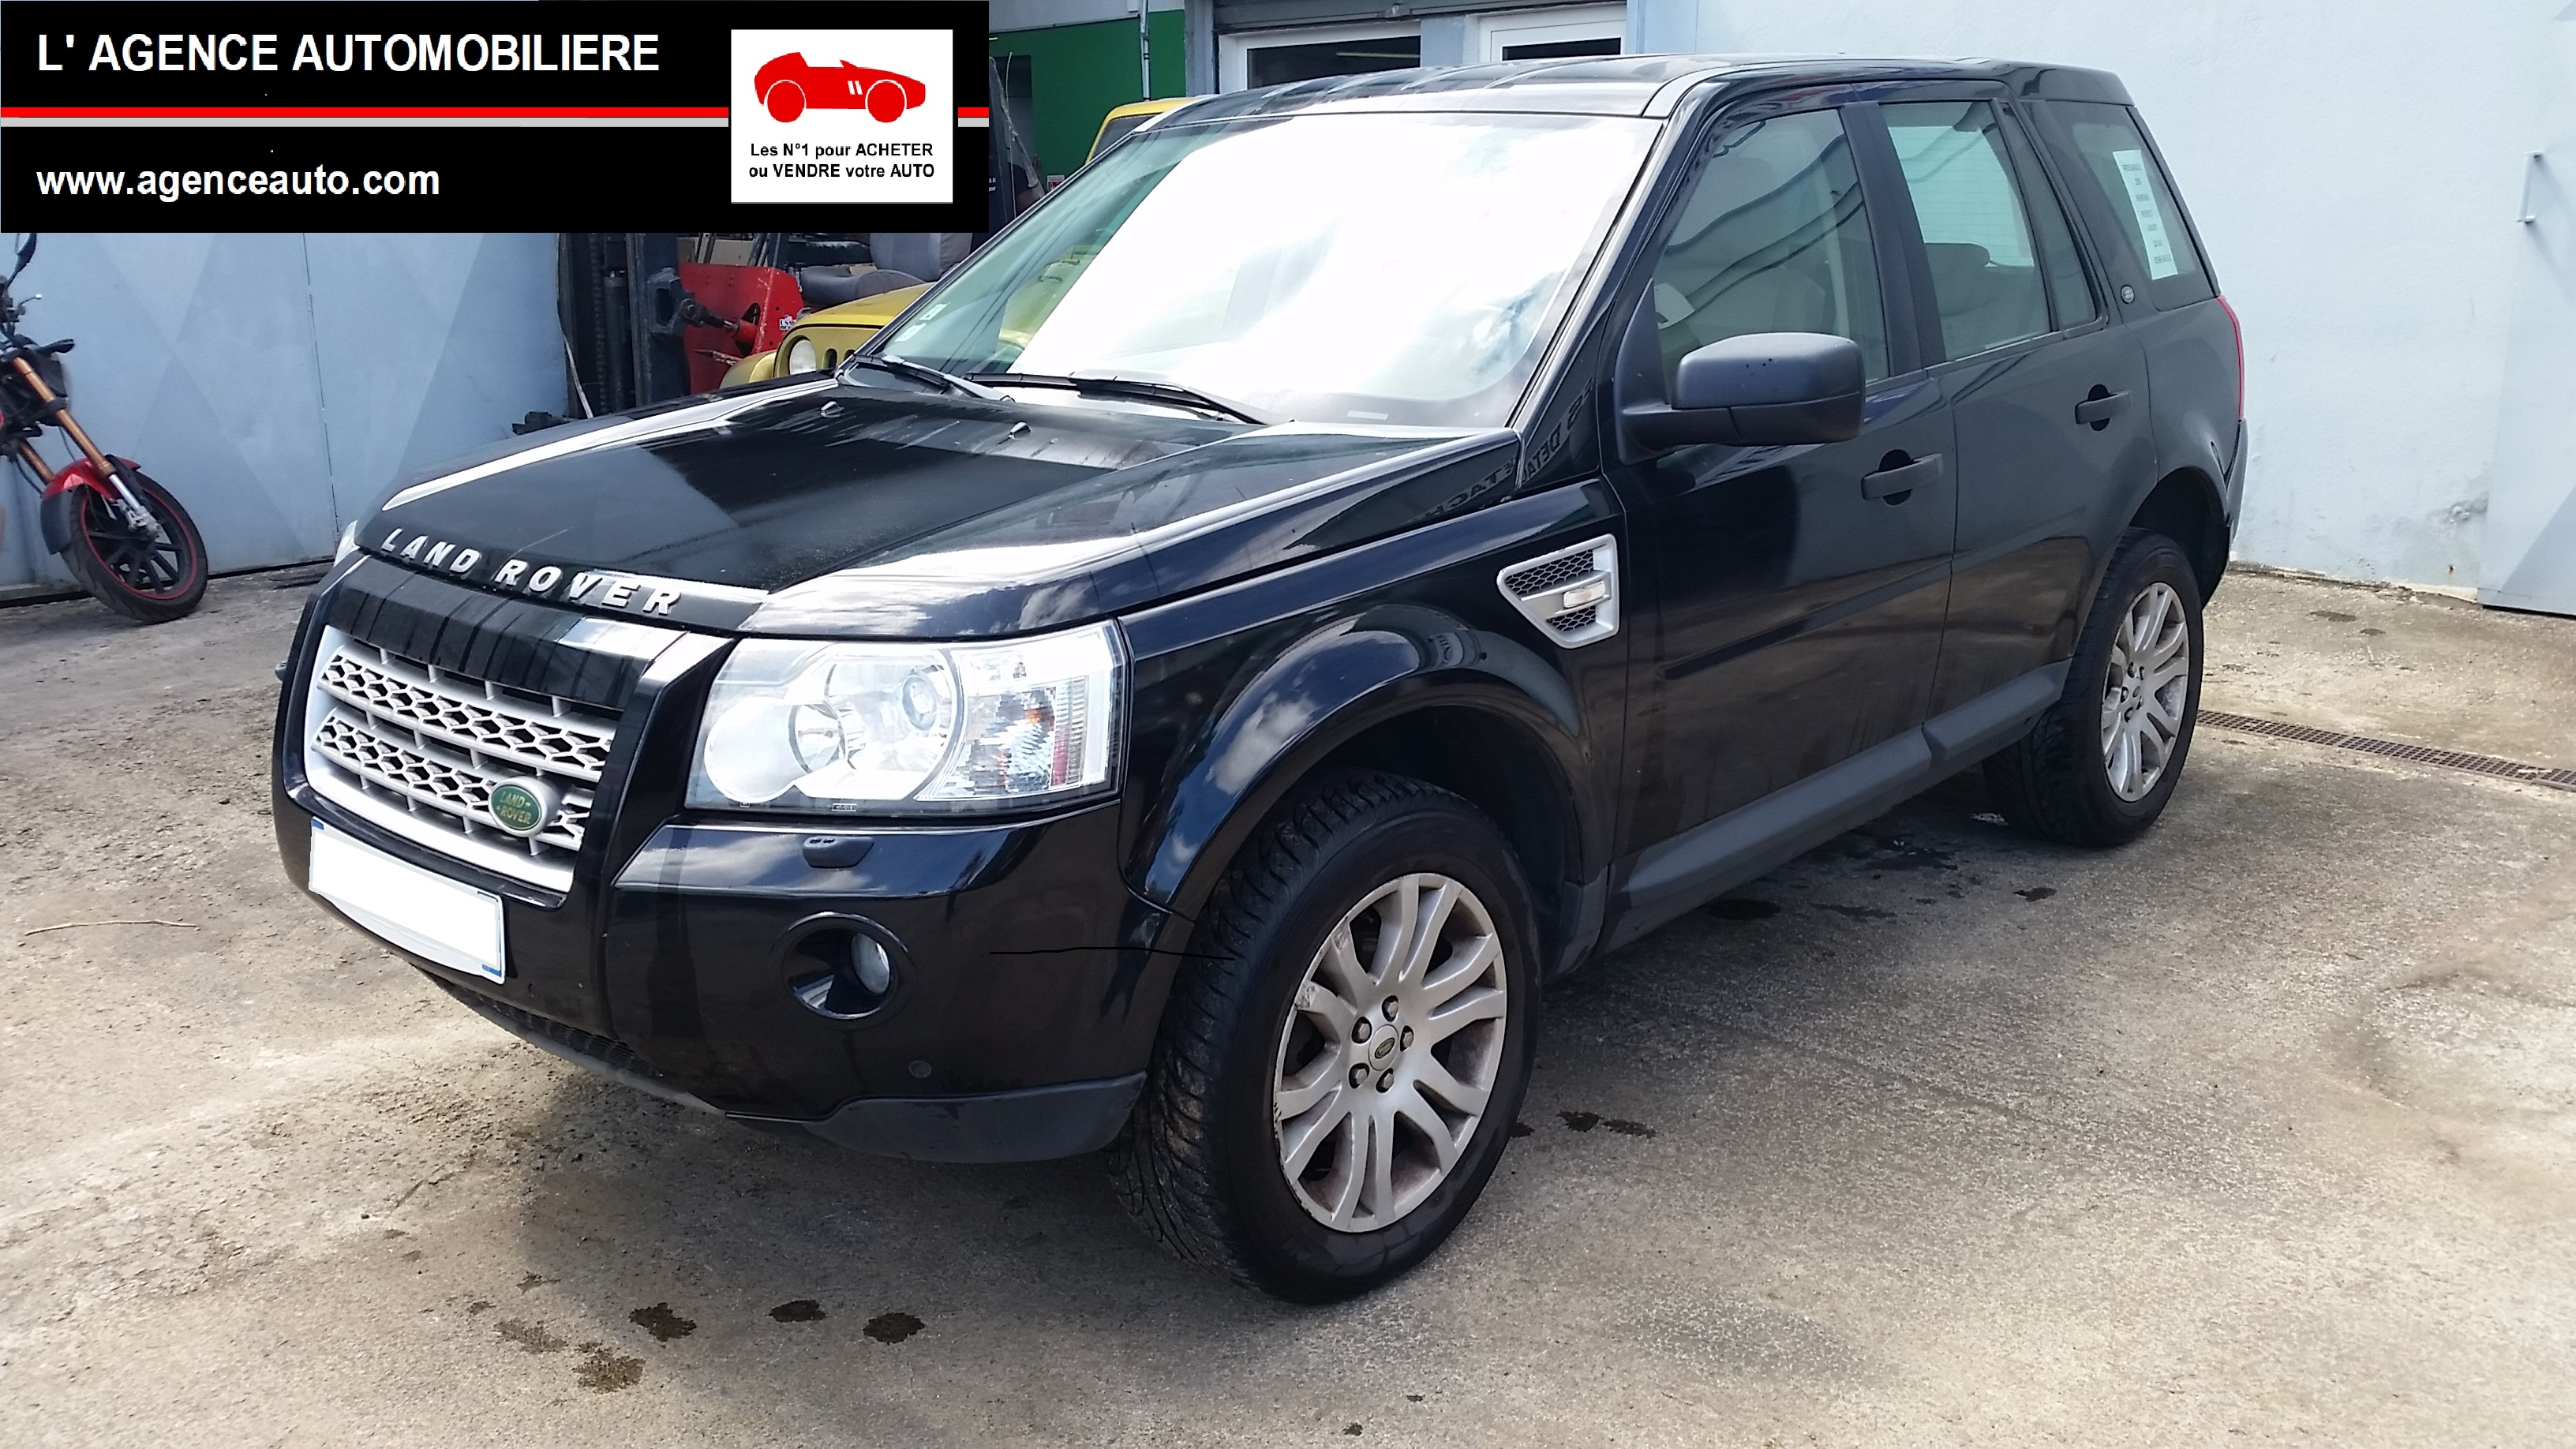 land rover freelander 2 tdi 160 hse bva 5 portes occasion. Black Bedroom Furniture Sets. Home Design Ideas